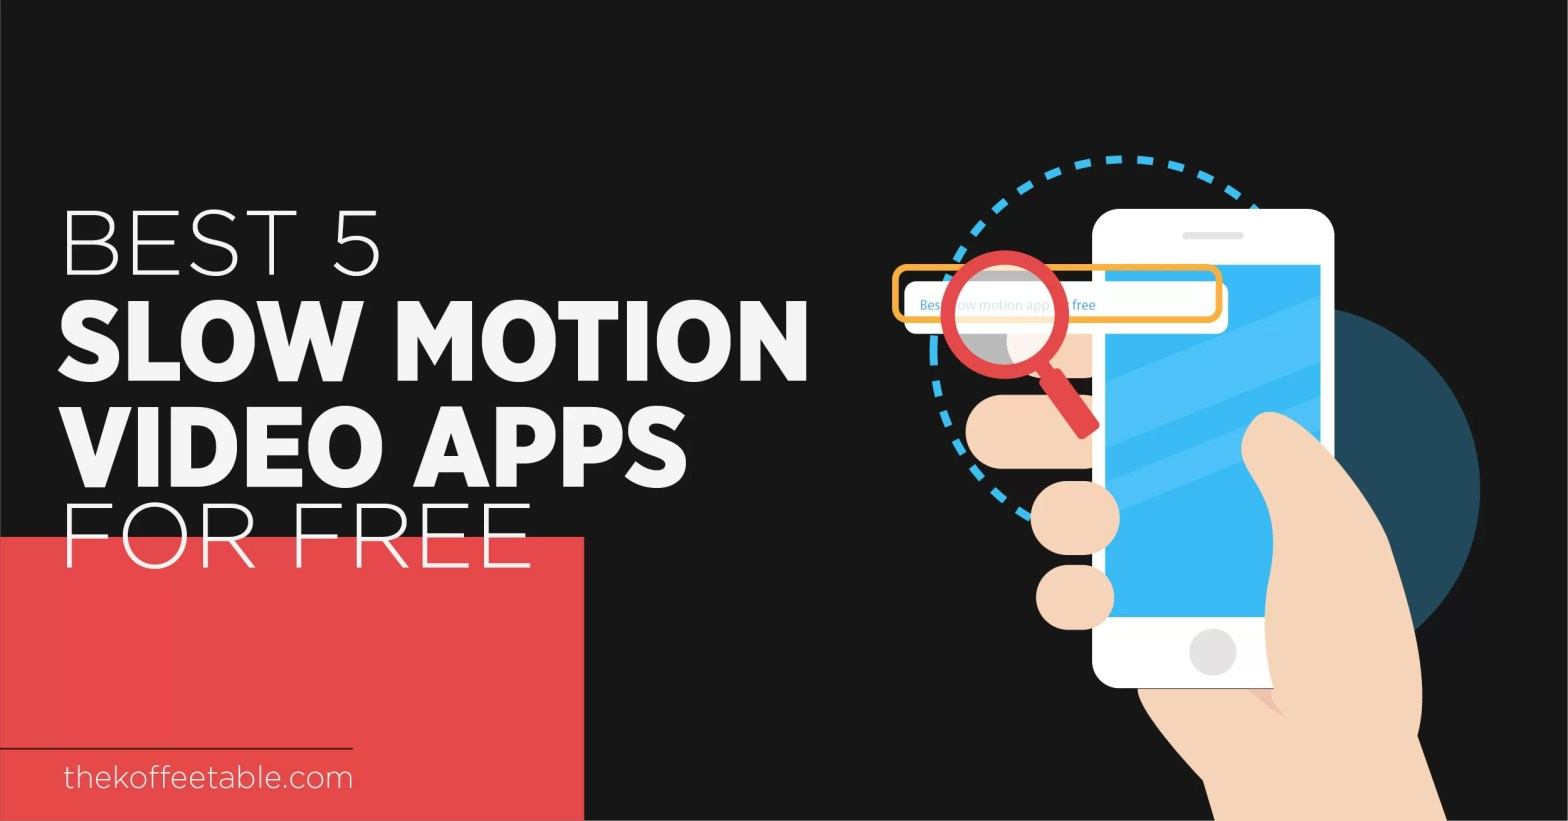 Best 5 Slow Motion Video Apps for Free